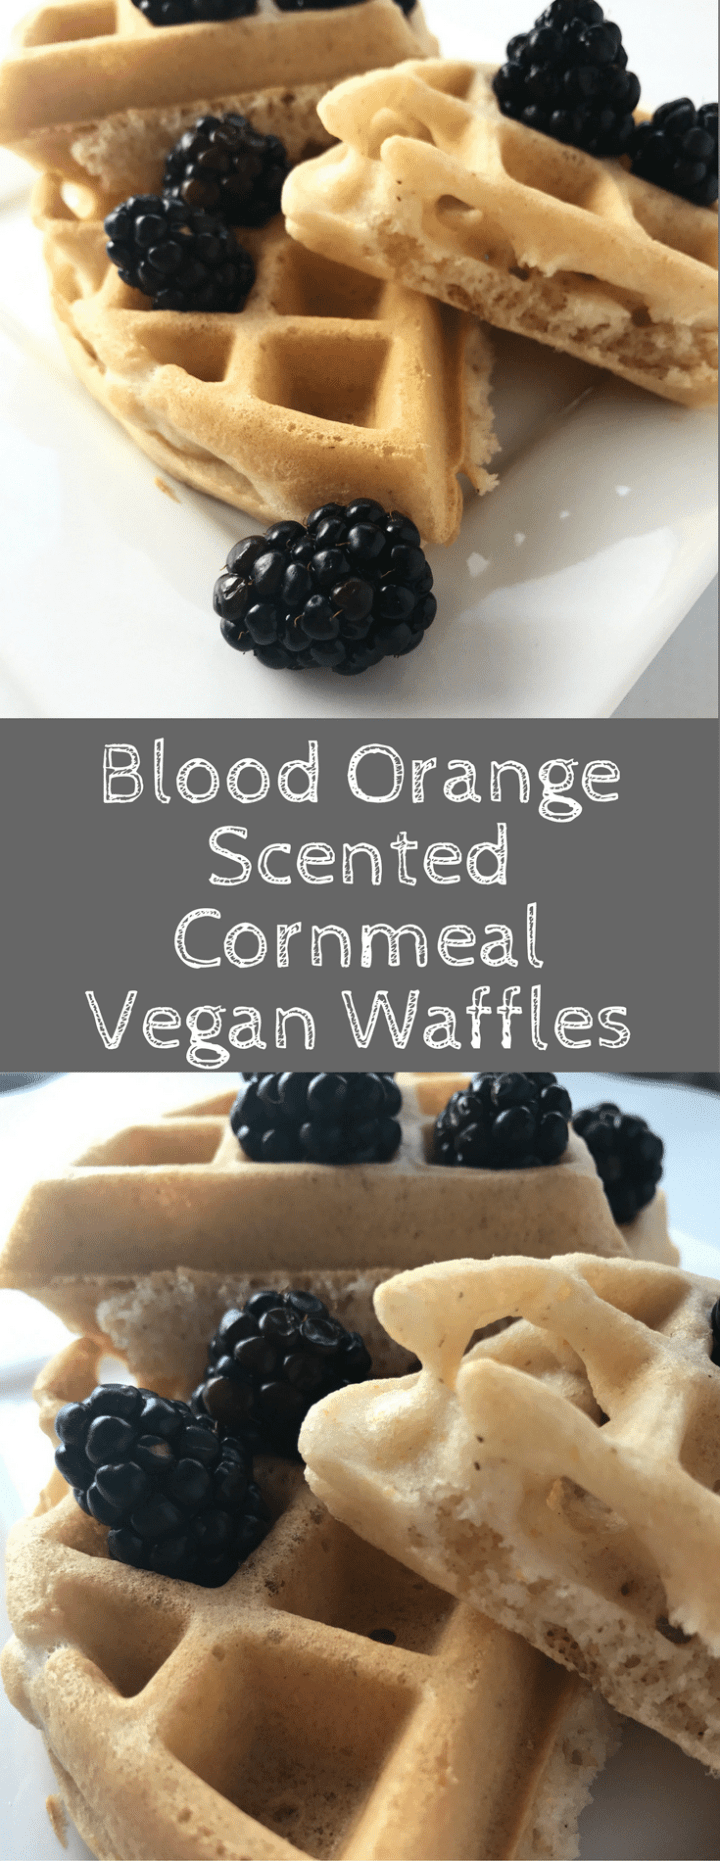 Blood Orange Scented Cornmeal Vegan Waffles are easy to whip up, fluffy, and full of flavor. Non-vegans won't even know they are missing anything! Vegetarian | Vegan | Breakfast | Comfort Food